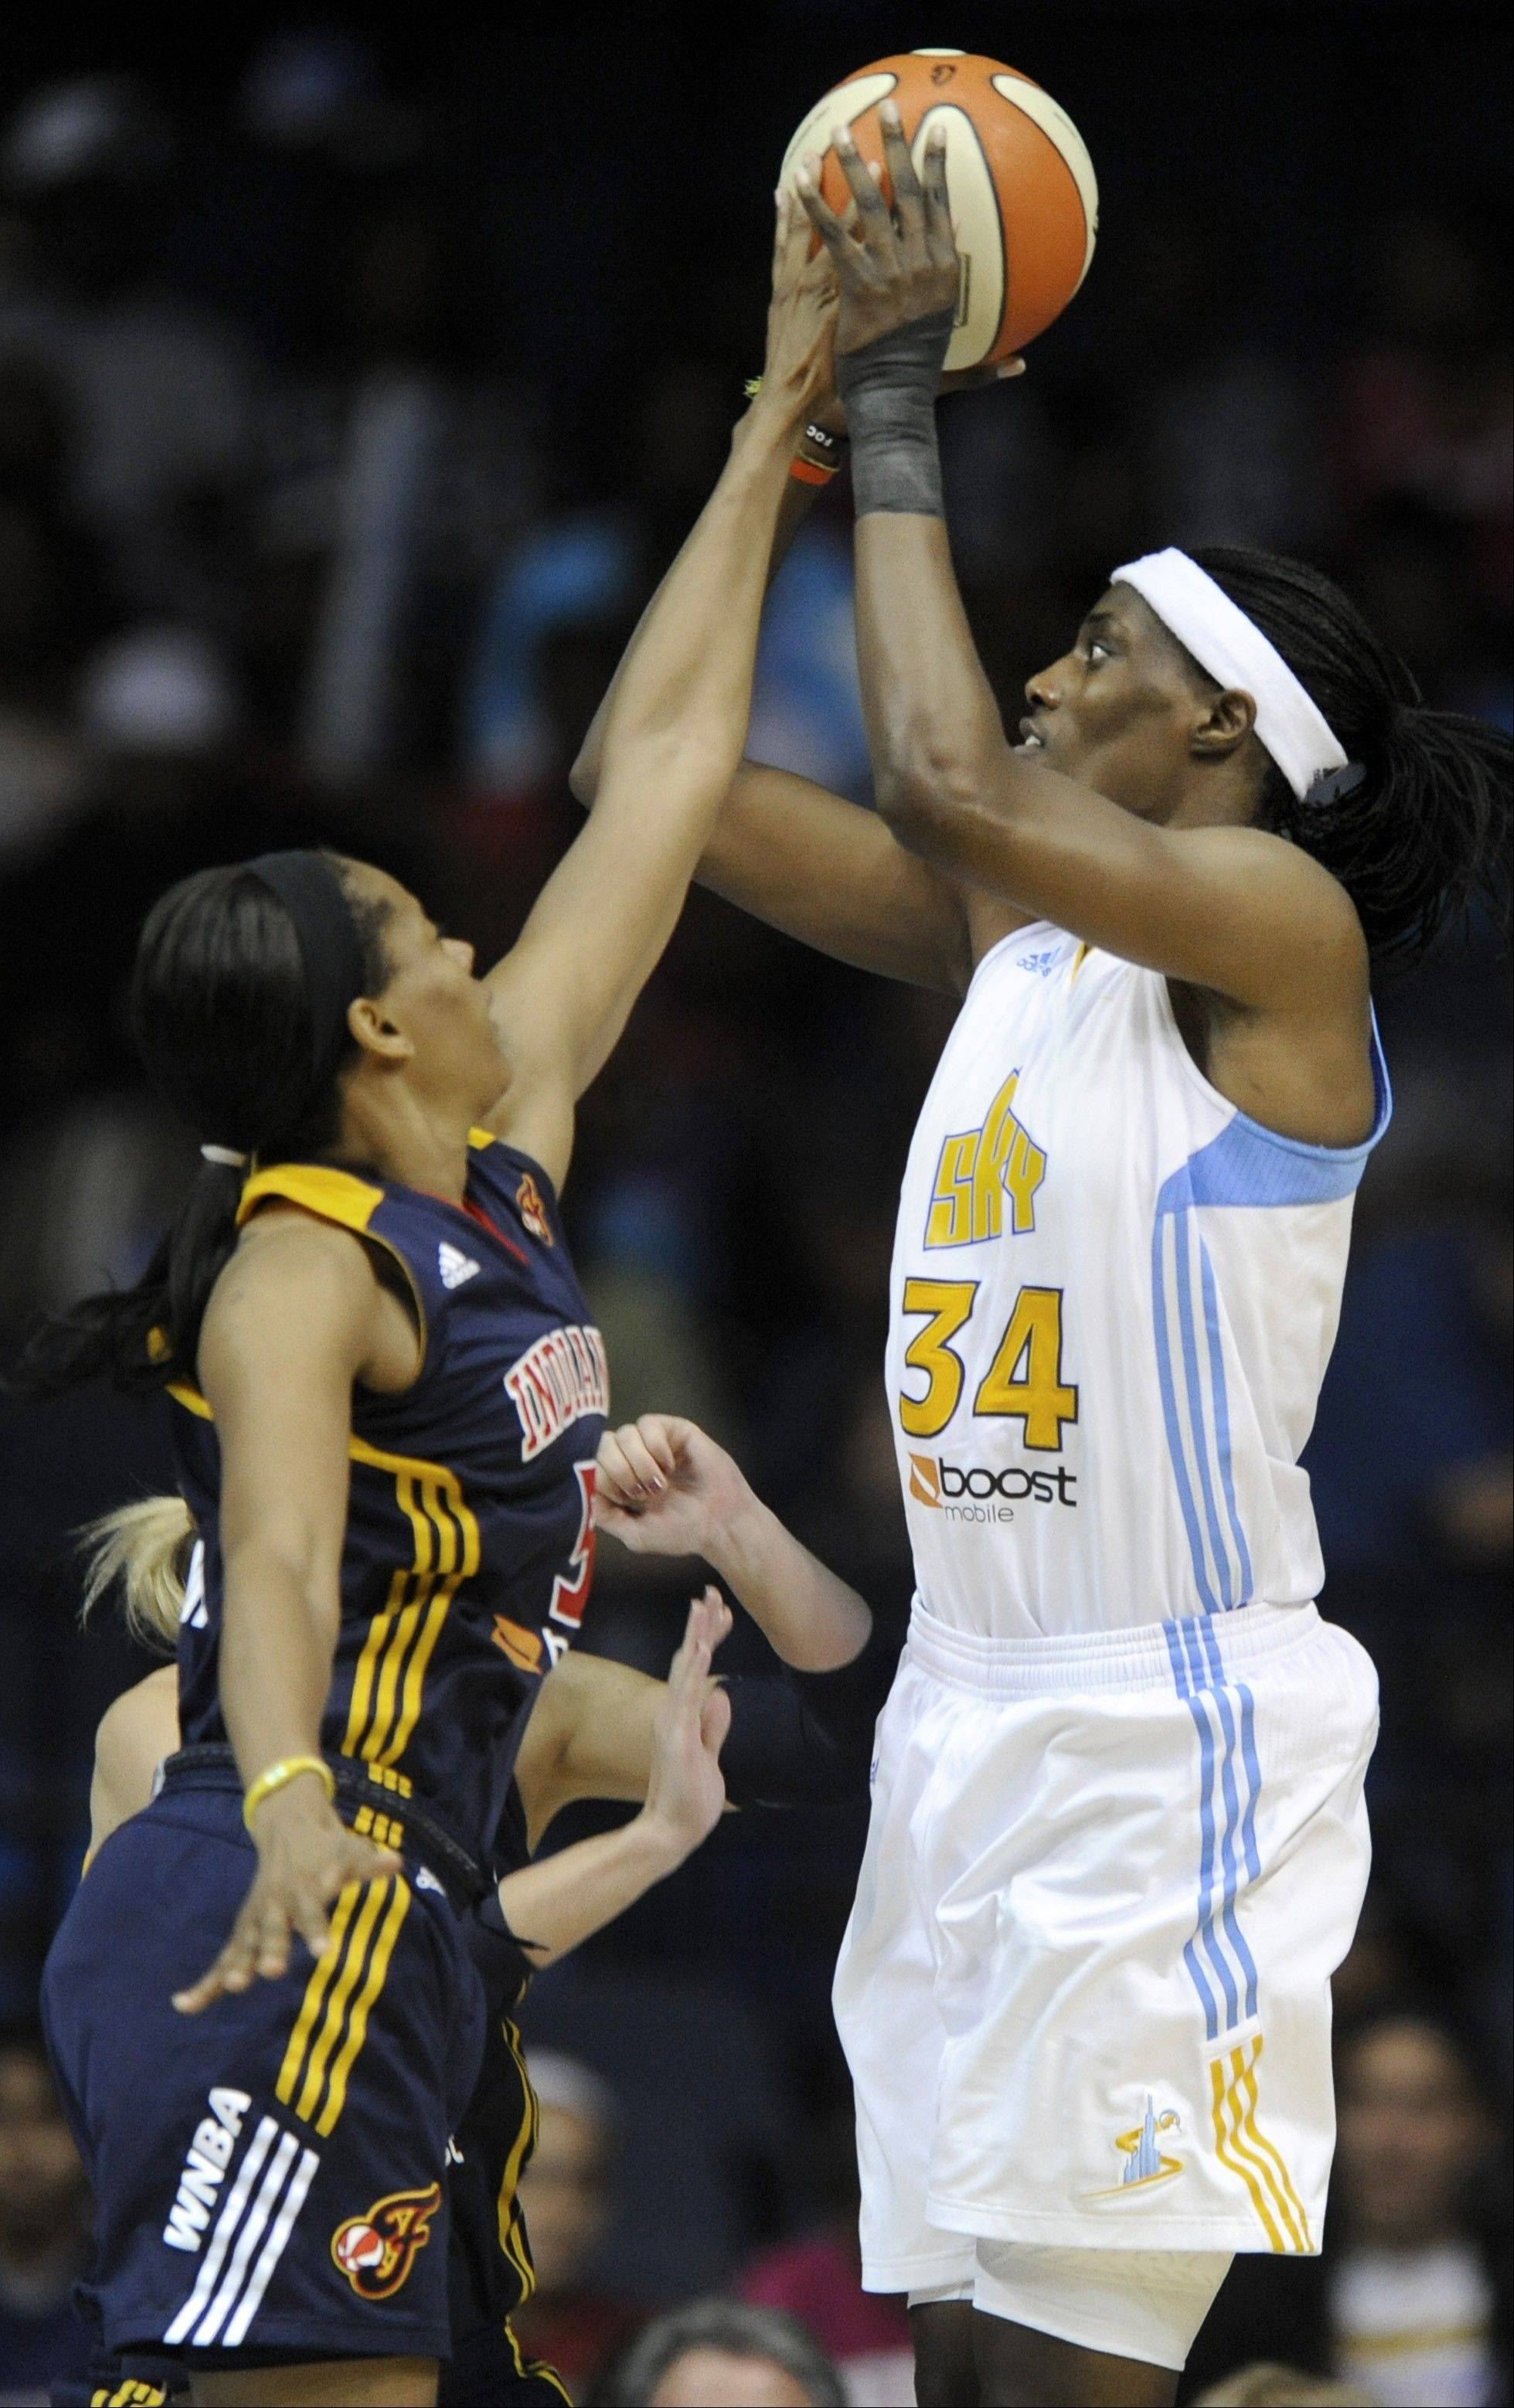 Chicago Sky center Sylvia Fowles, right, averaged 20 points and 10 rebounds last season. The Sky will play the Indiana Fever for its home opener Friday at Allstate Arena, and the team has added more veteran players in a bid to make the playoffs for the first time in franchise history.